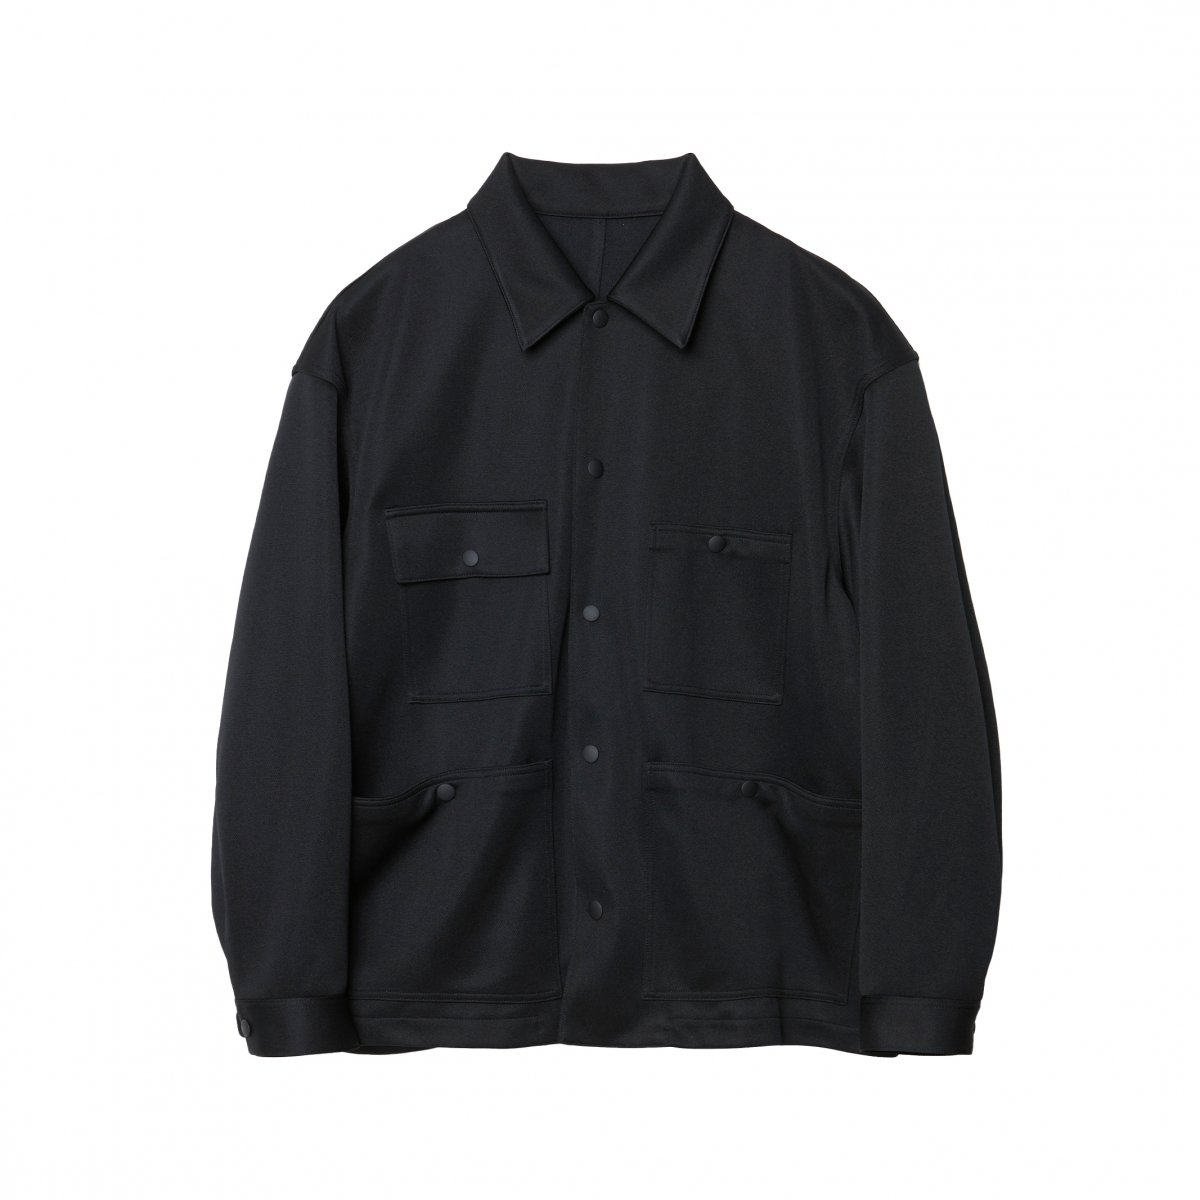 <img class='new_mark_img1' src='https://img.shop-pro.jp/img/new/icons5.gif' style='border:none;display:inline;margin:0px;padding:0px;width:auto;' />JERSEY CPO BLOUSON / BLACK